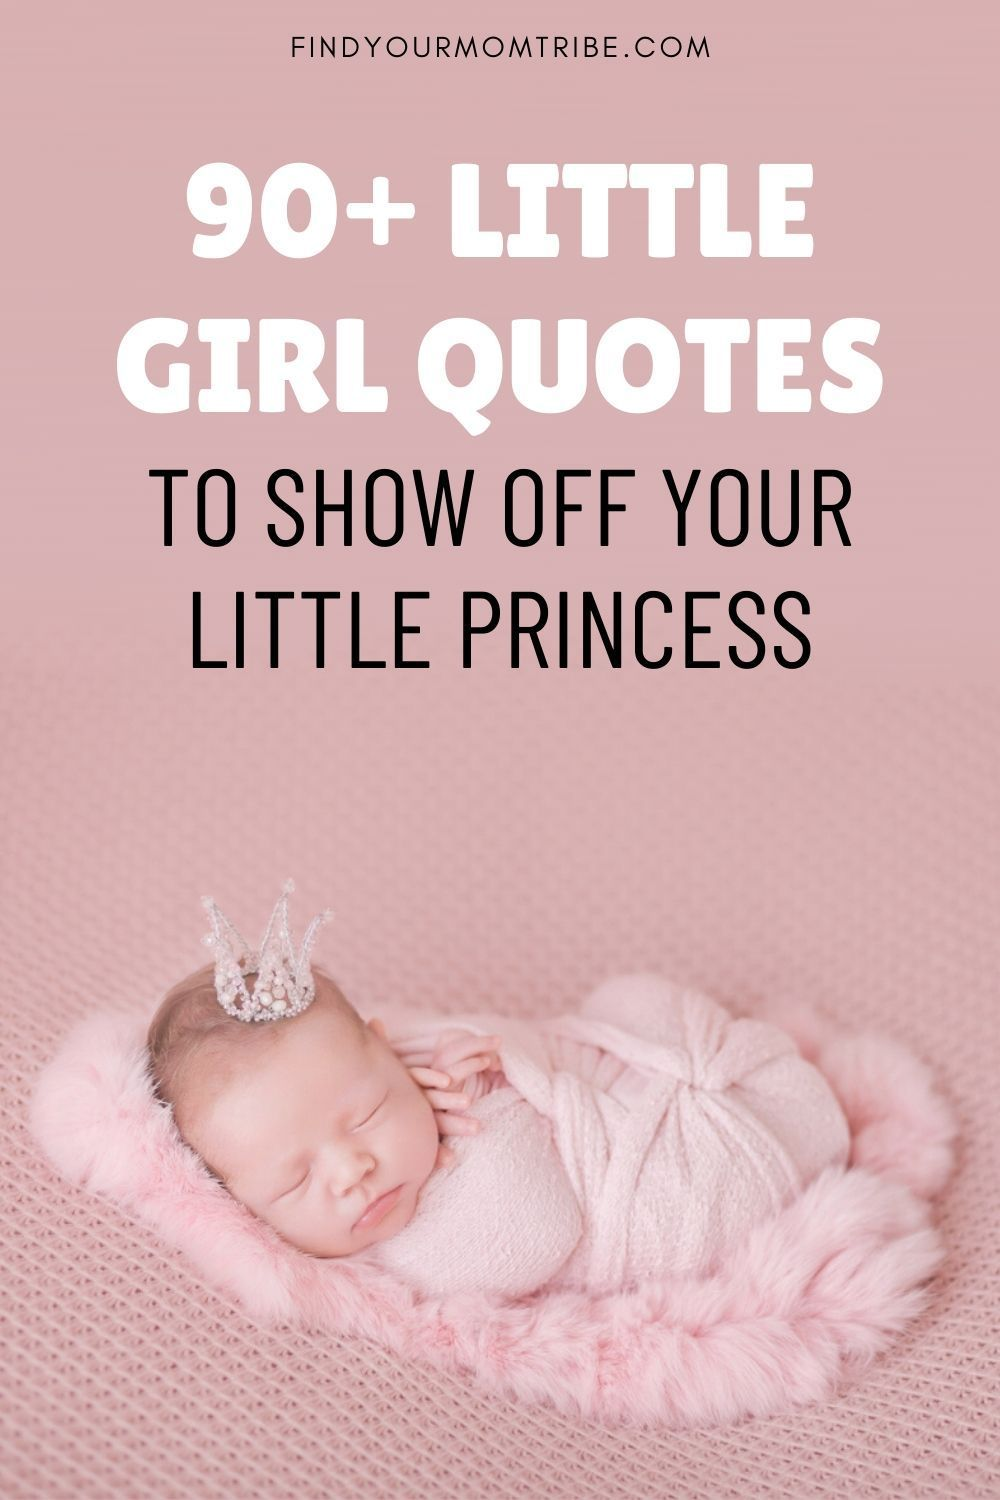 Cute Baby Girl Quotes With Images : quotes, images, Little, Quotes, Princess, Newborn, Girl,, Quotes,, Welcome